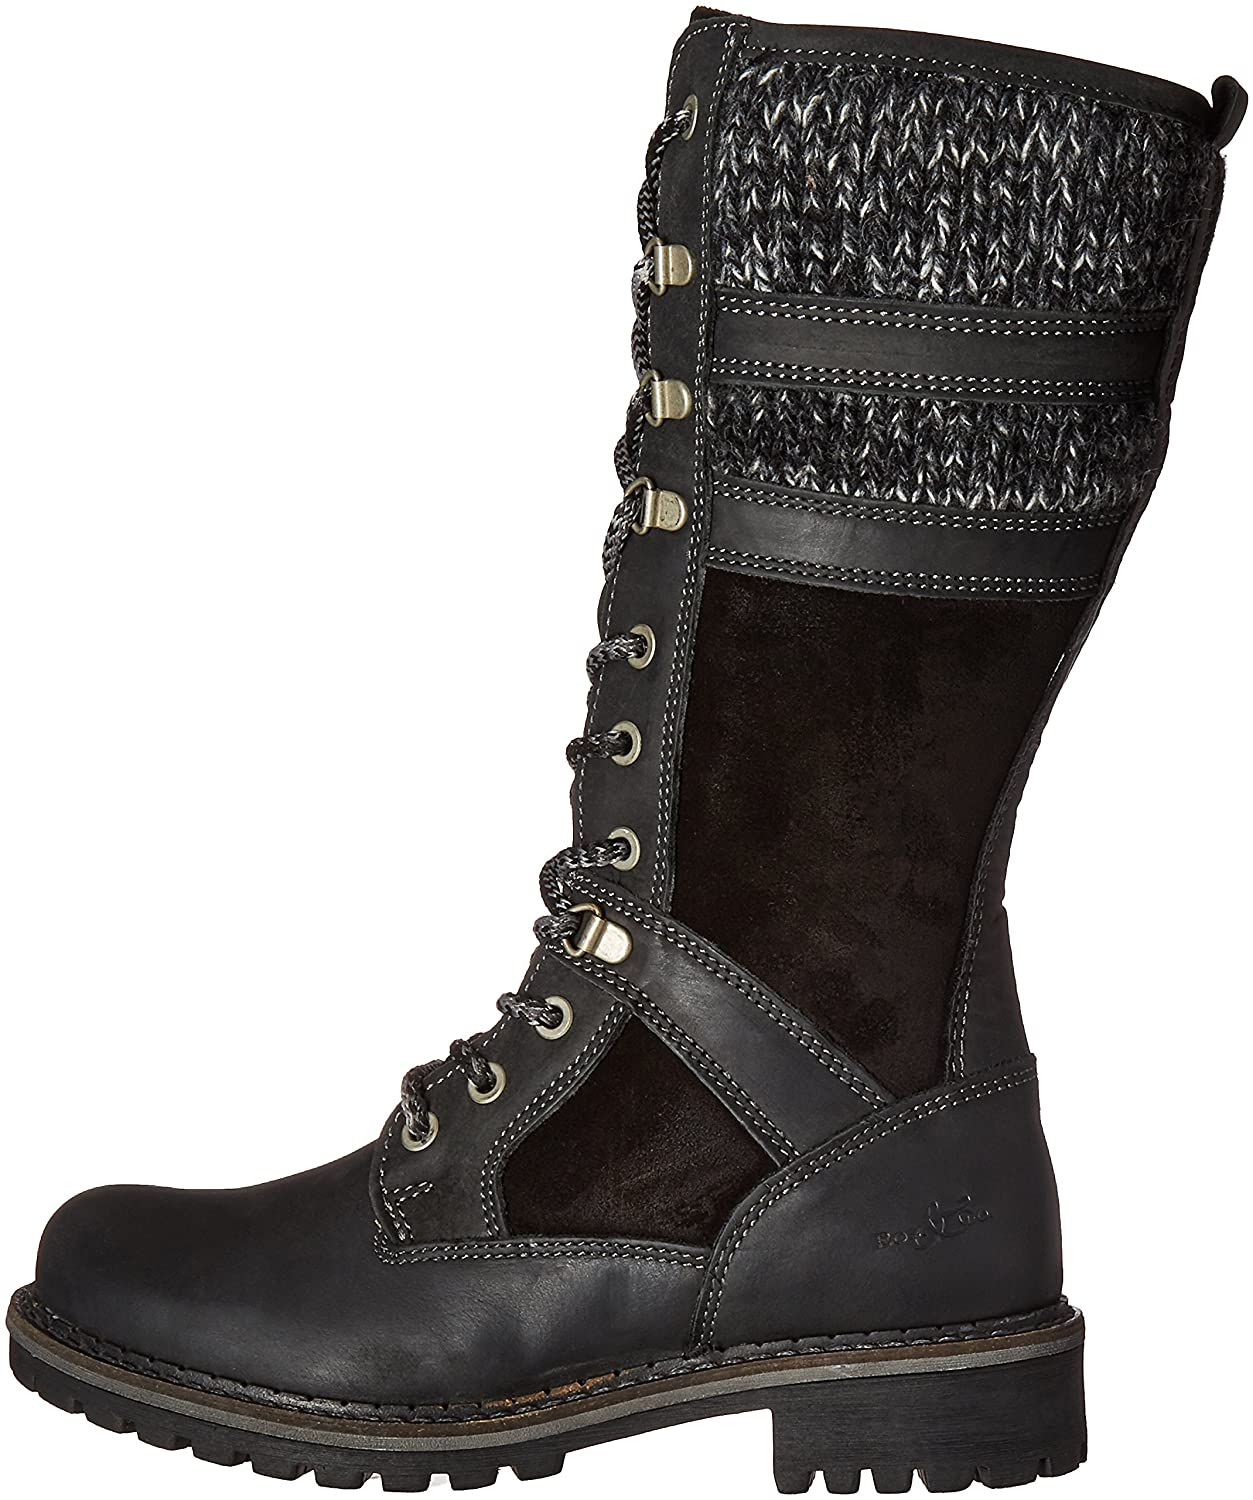 Bos. & Co. Women's Holding M Snow Boot B01DIOODIE 41 M Holding EU (10-10.5 US)|Black Cromagnum/Oilsuede/Sweater c15ba4